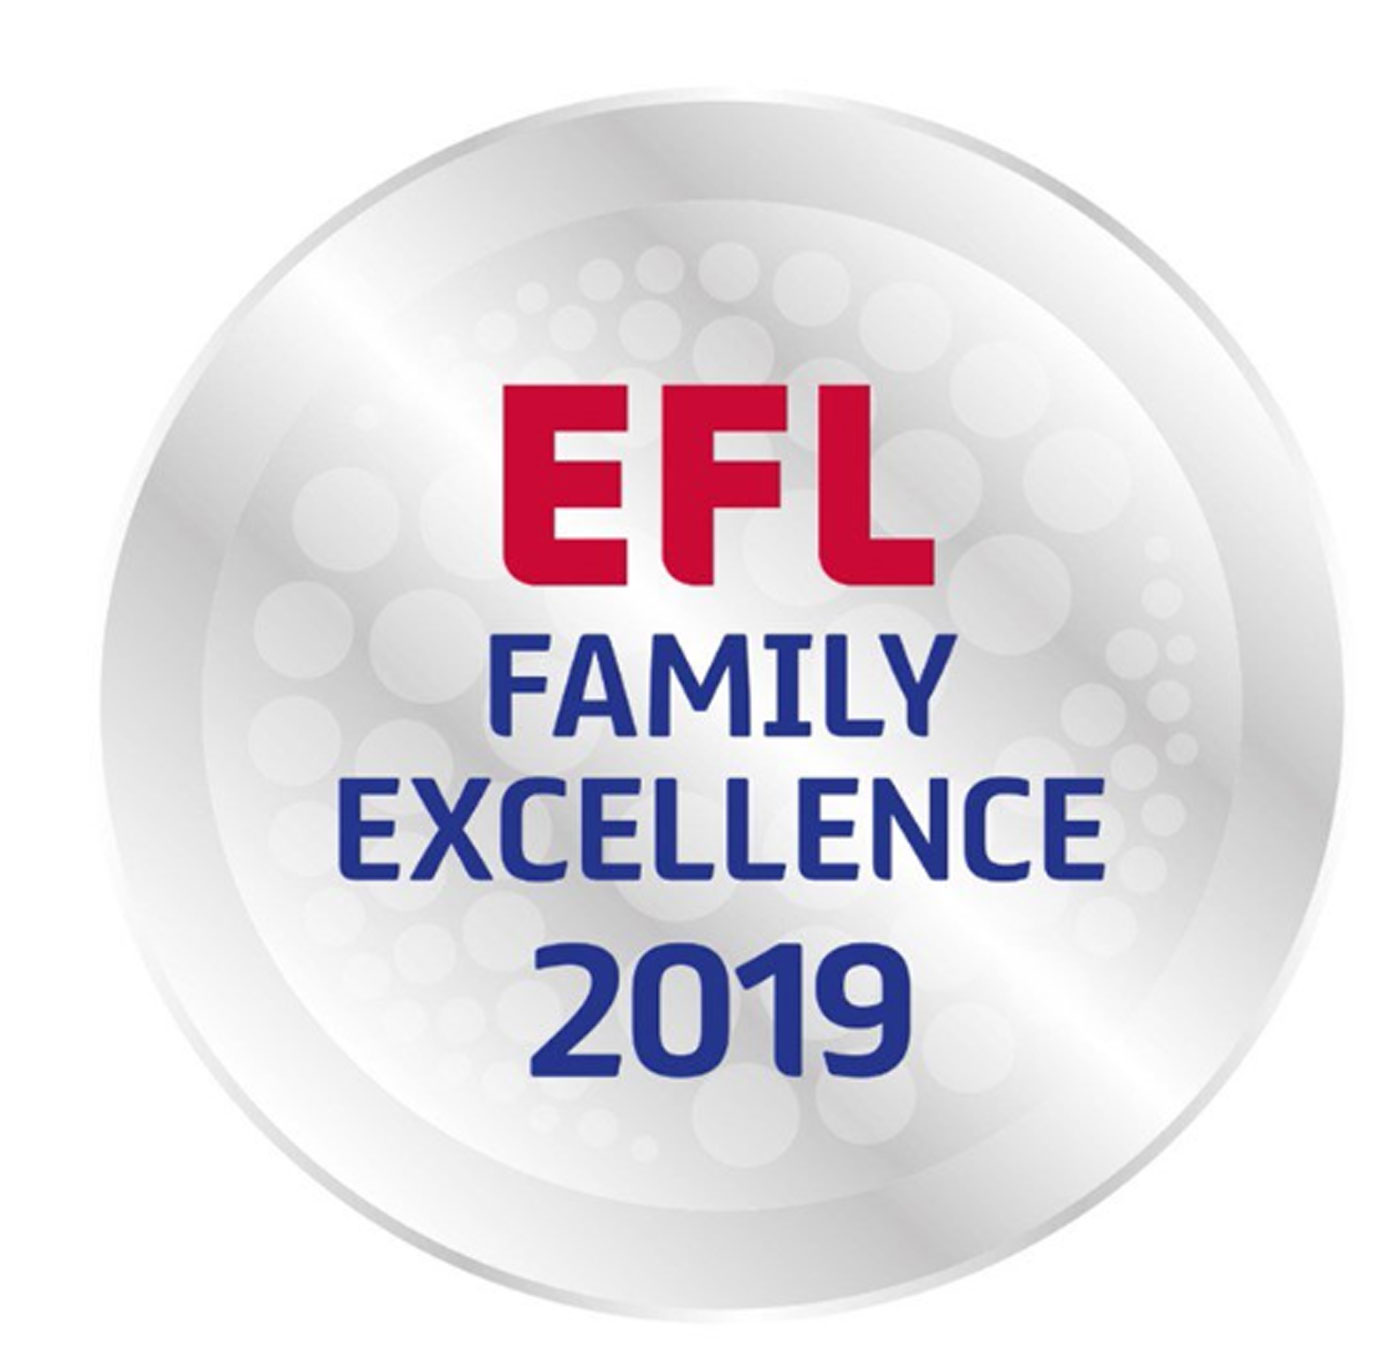 Family-excellence-2019.jpg